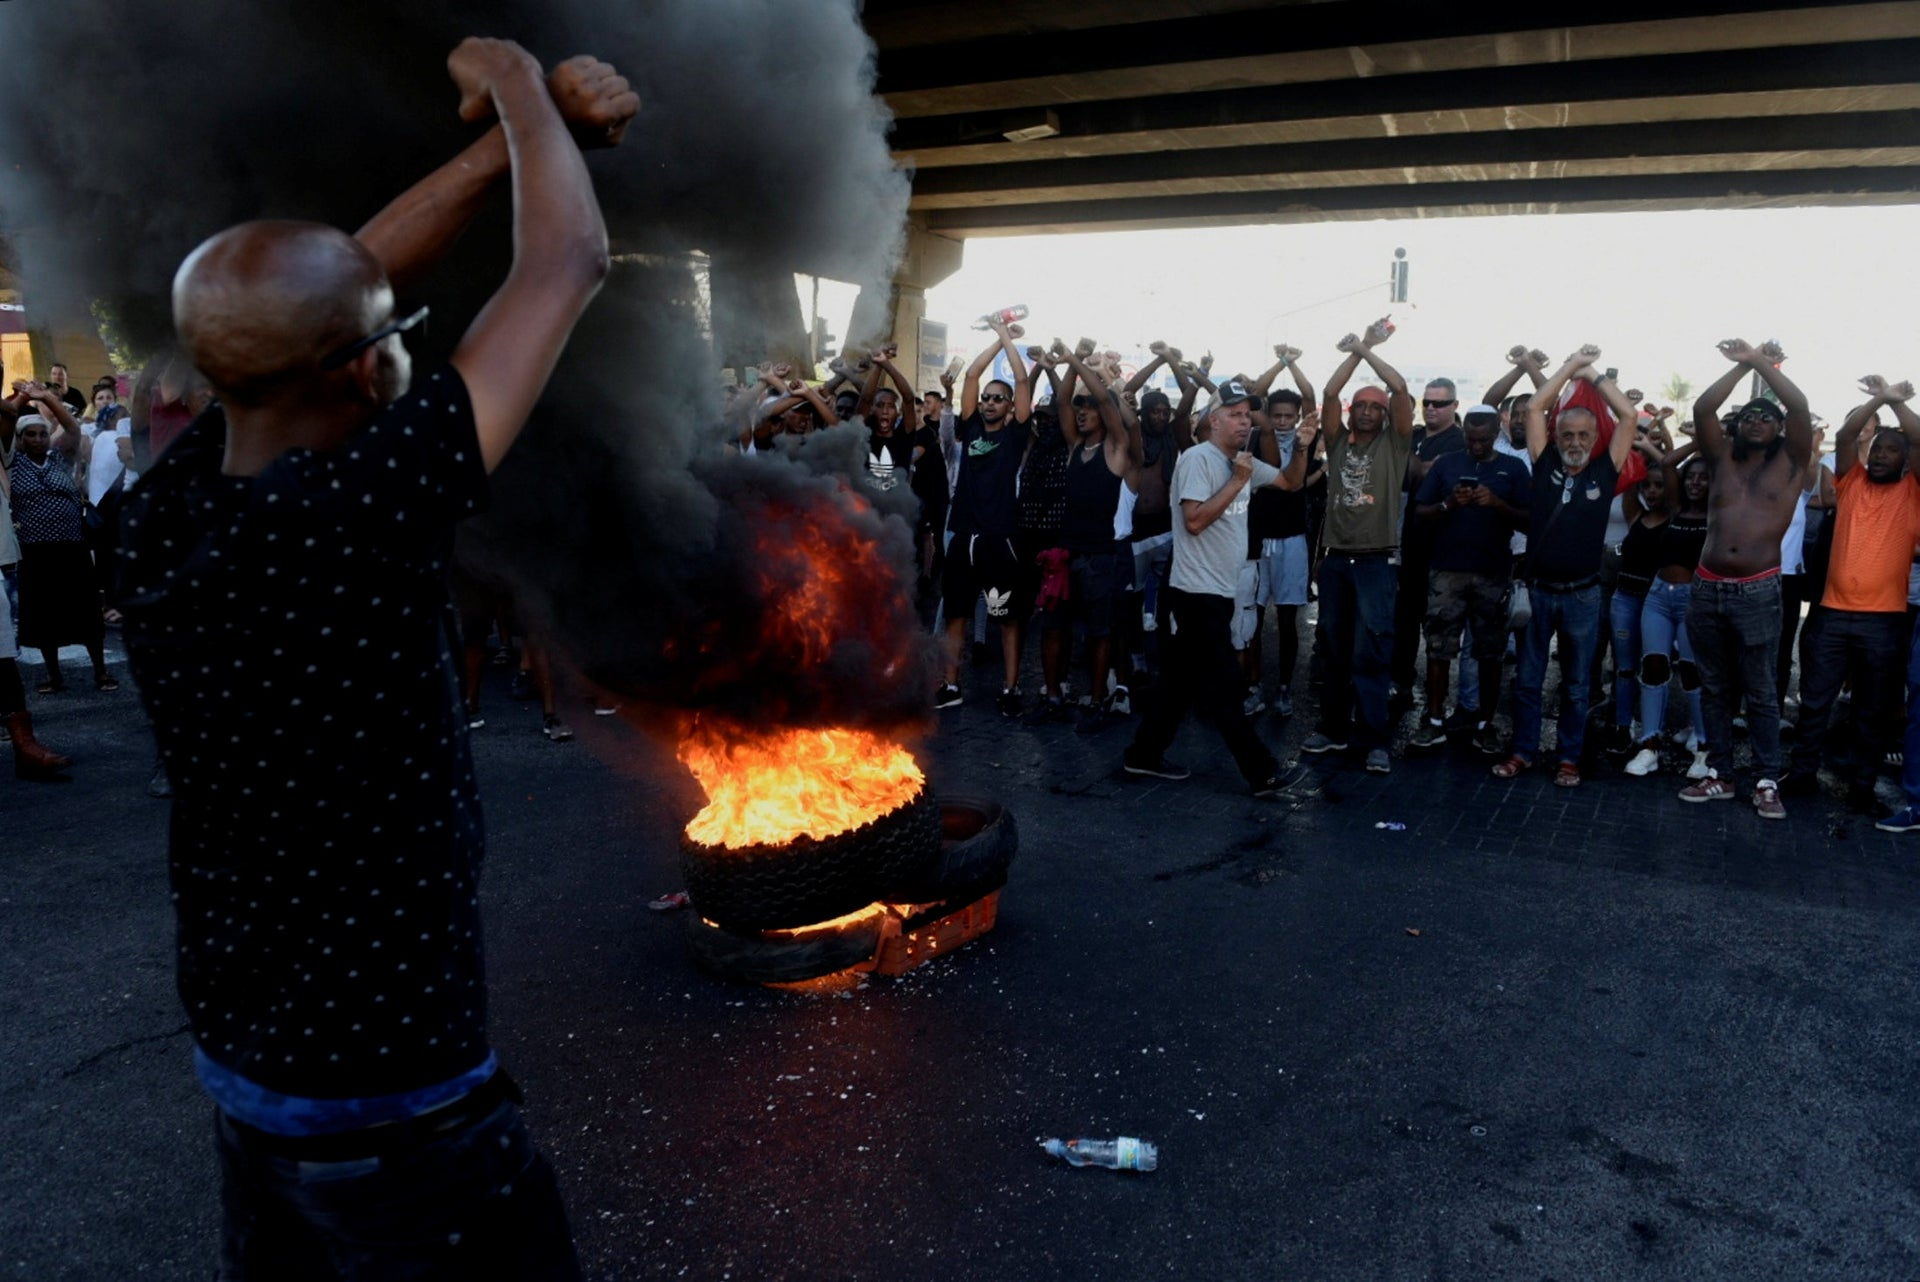 Demonstrators in the North of Israel are protesting against police brutality.